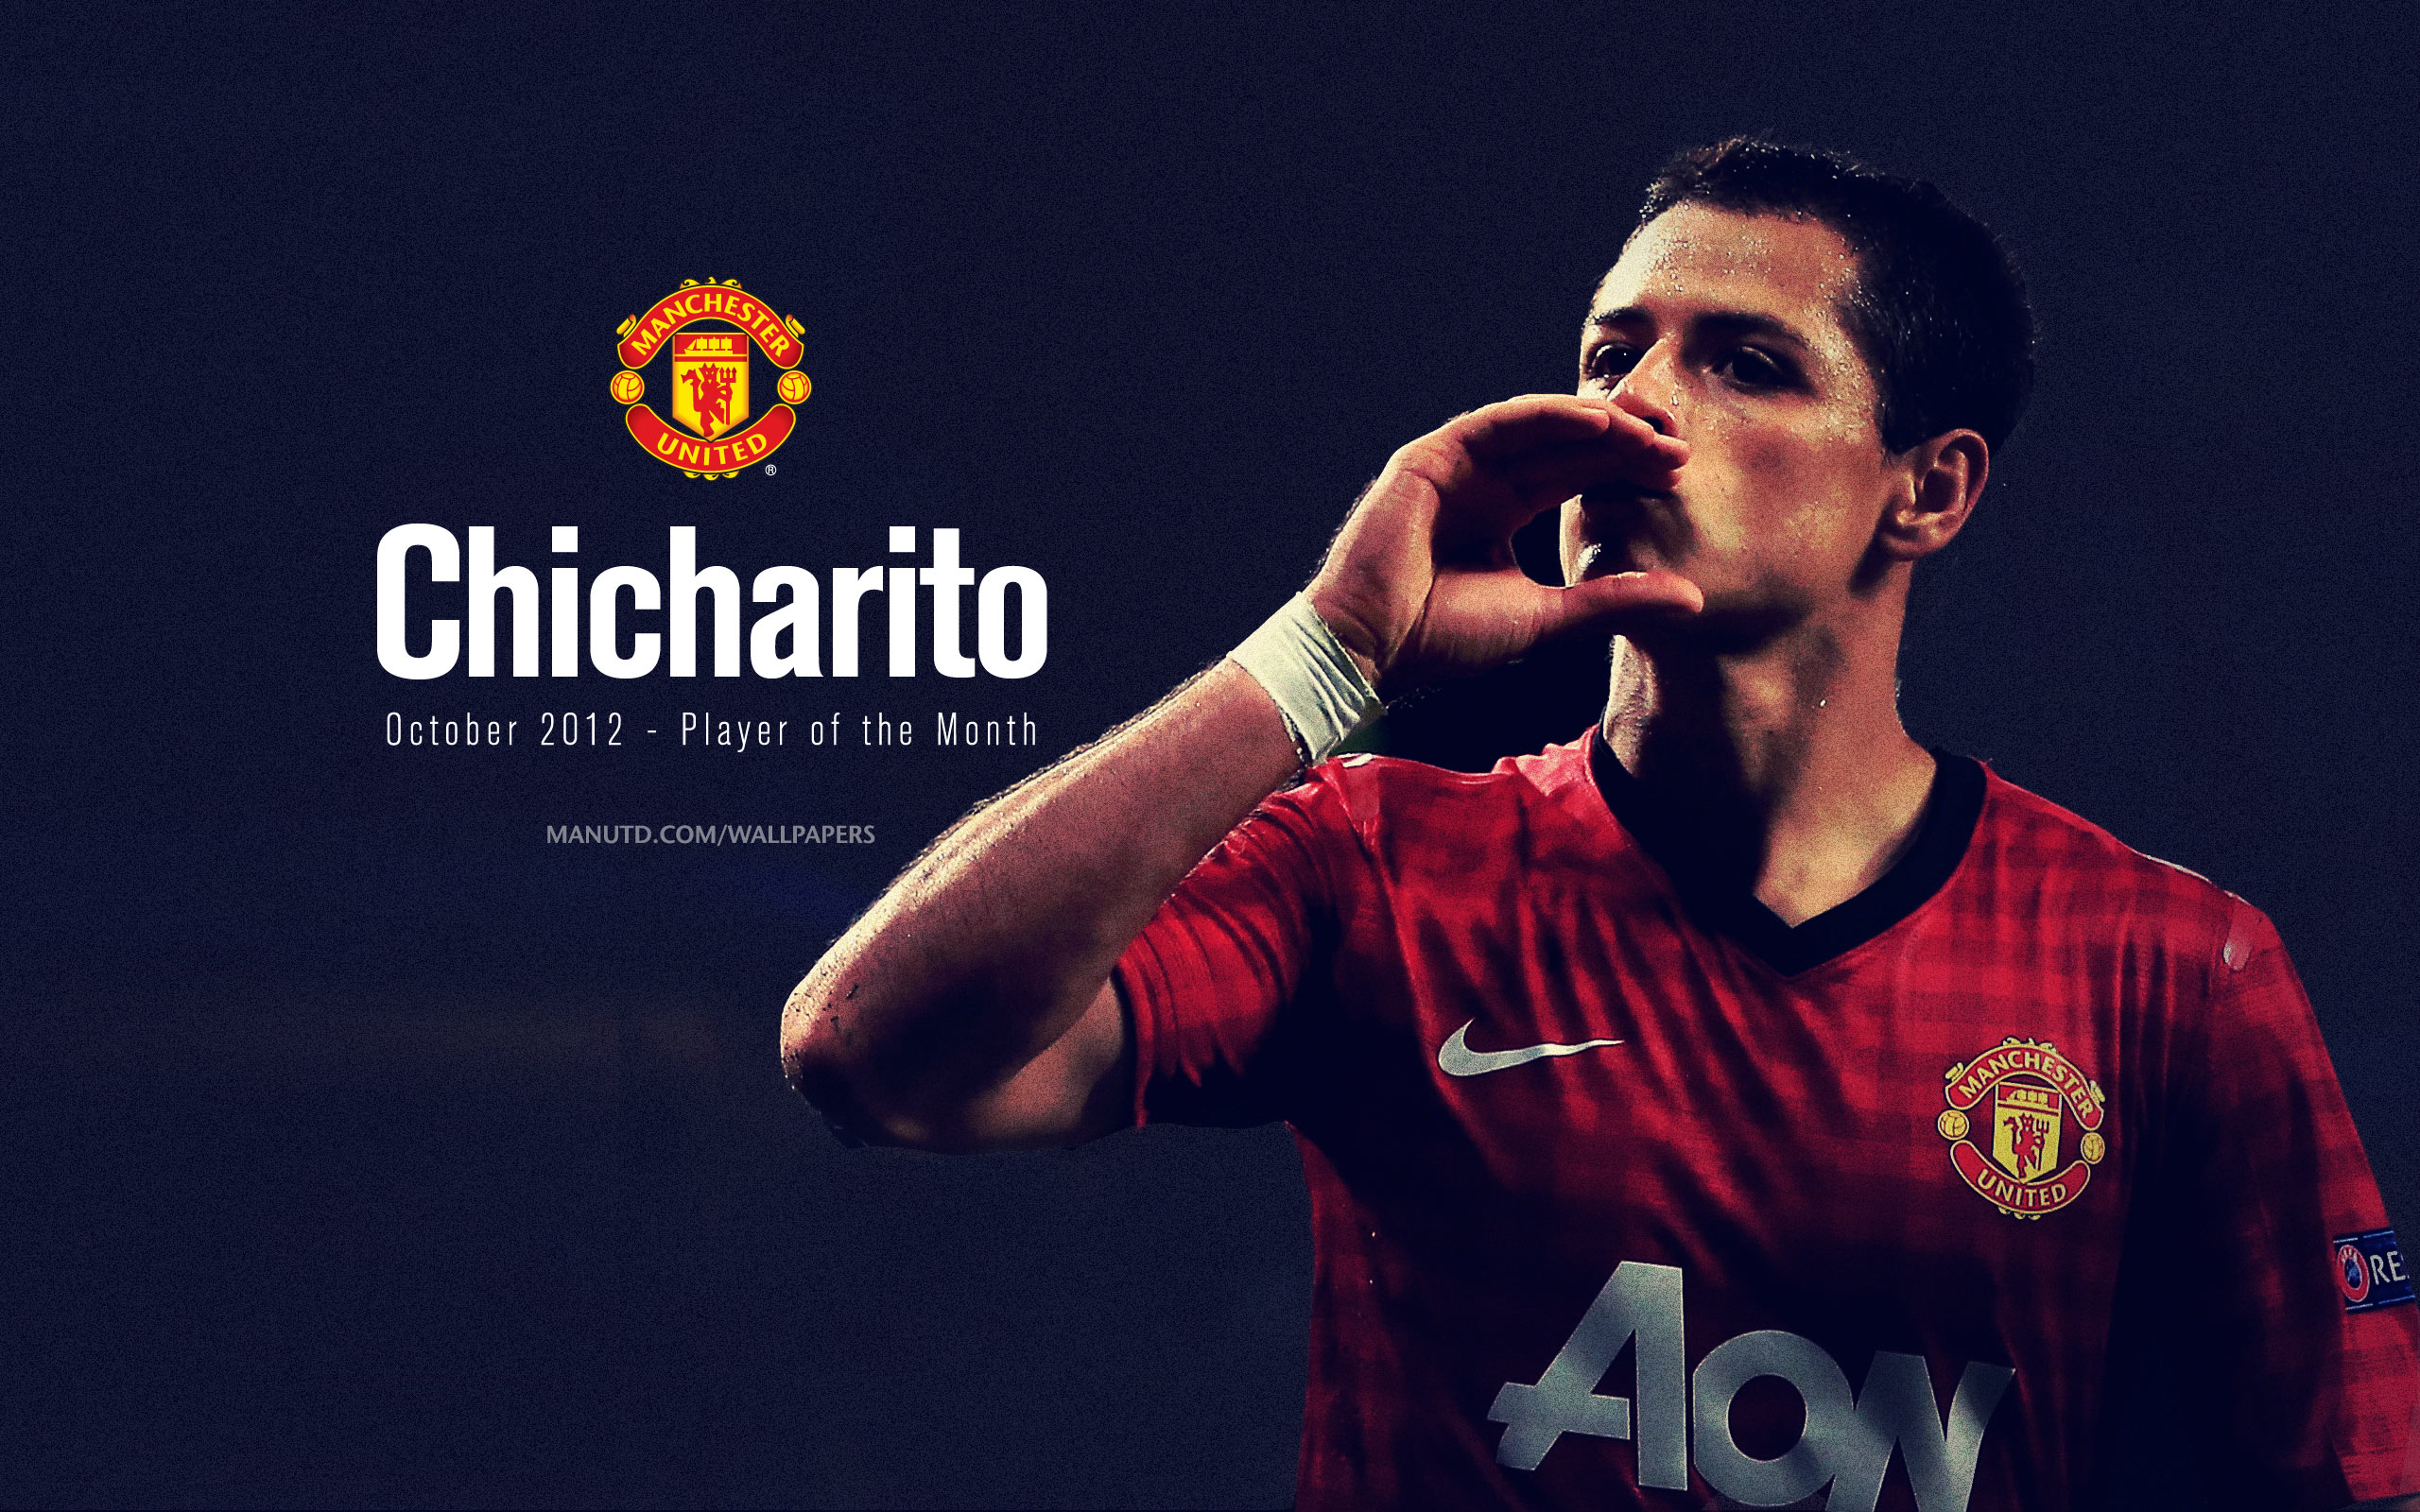 Manchester United Chicharito Wallpapers